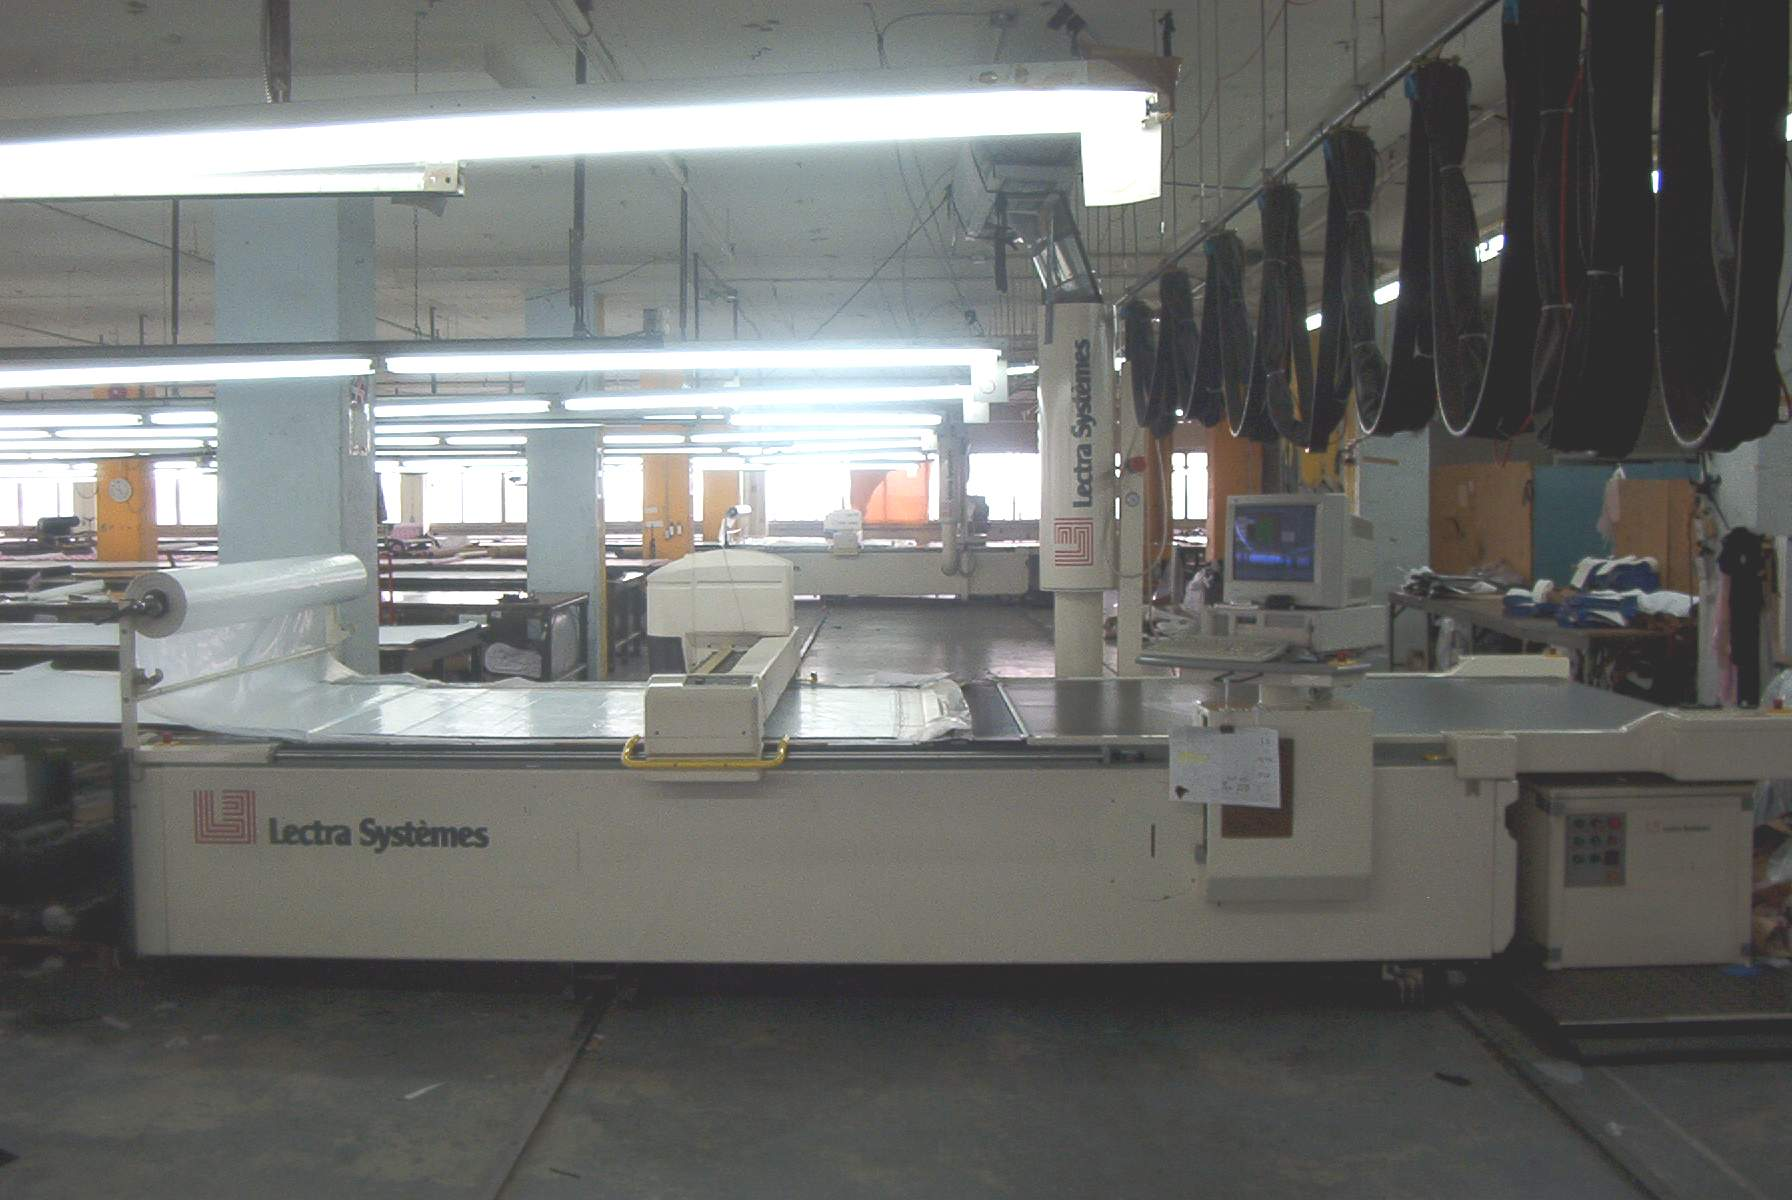 Lectra VT-5000 CNC fabric Cutter - Exapro